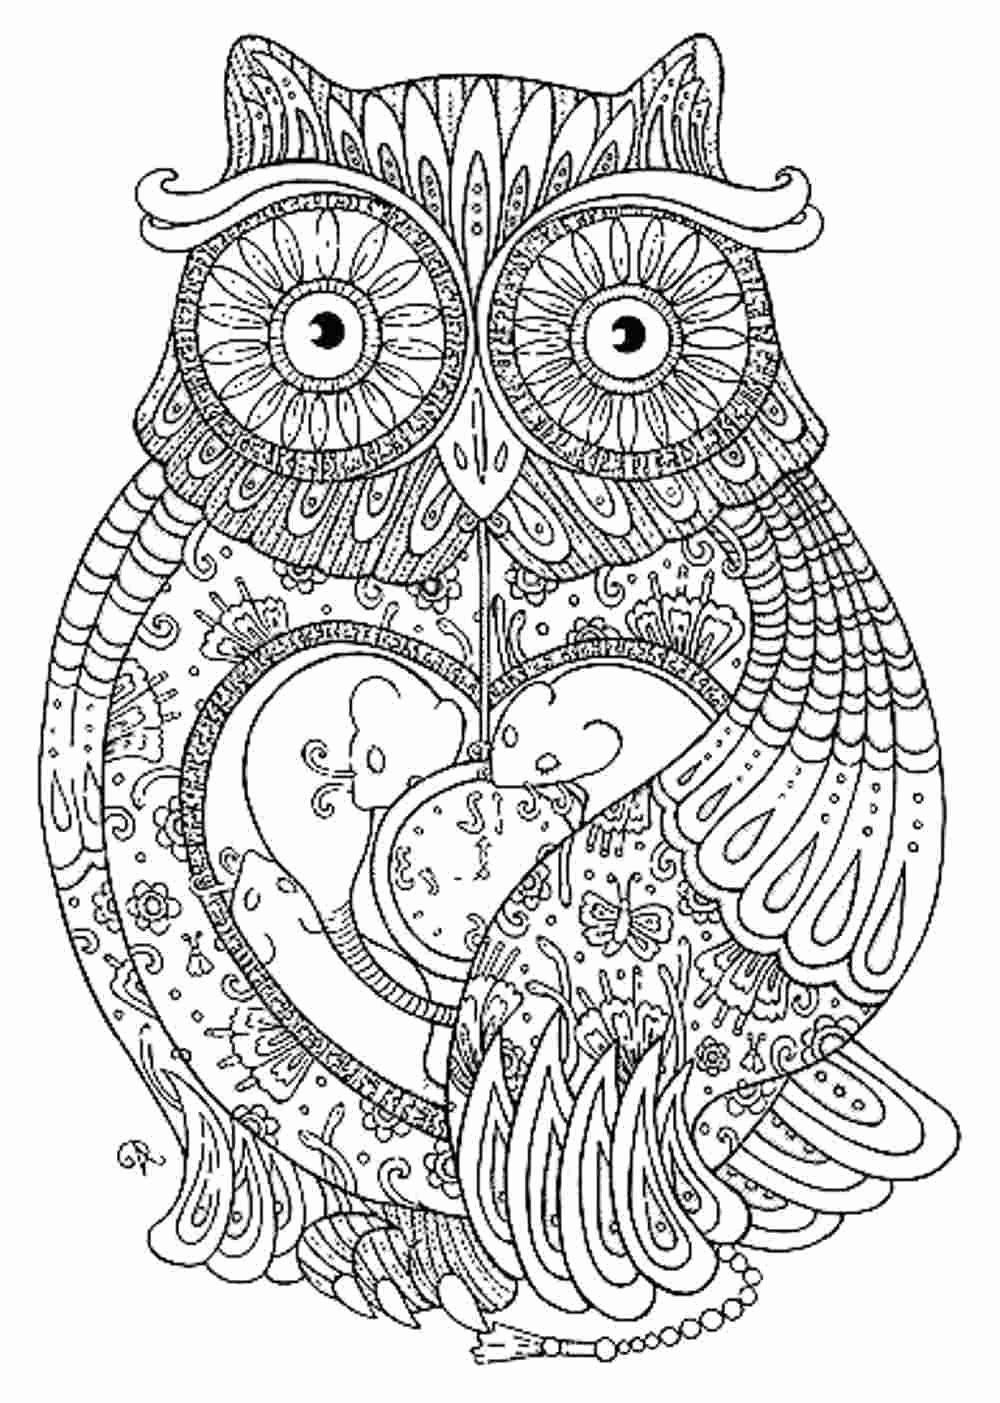 Bird Printable Coloring Pages In 2020 Owl Coloring Pages